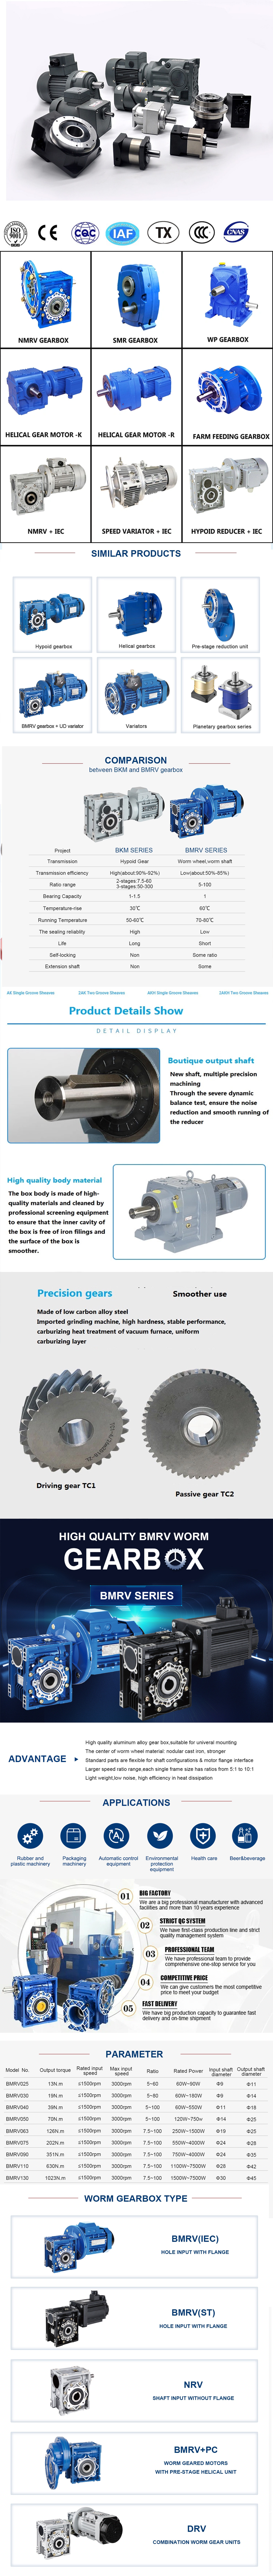 in Madrid Spain  sales   price   shop   near me   near me shop   factory   supplier Rexroth Planetary Gearbox Gft36t3b100-12 for Road Roller Gear manufacturer   best   Cost   Custom   Cheap   wholesaler